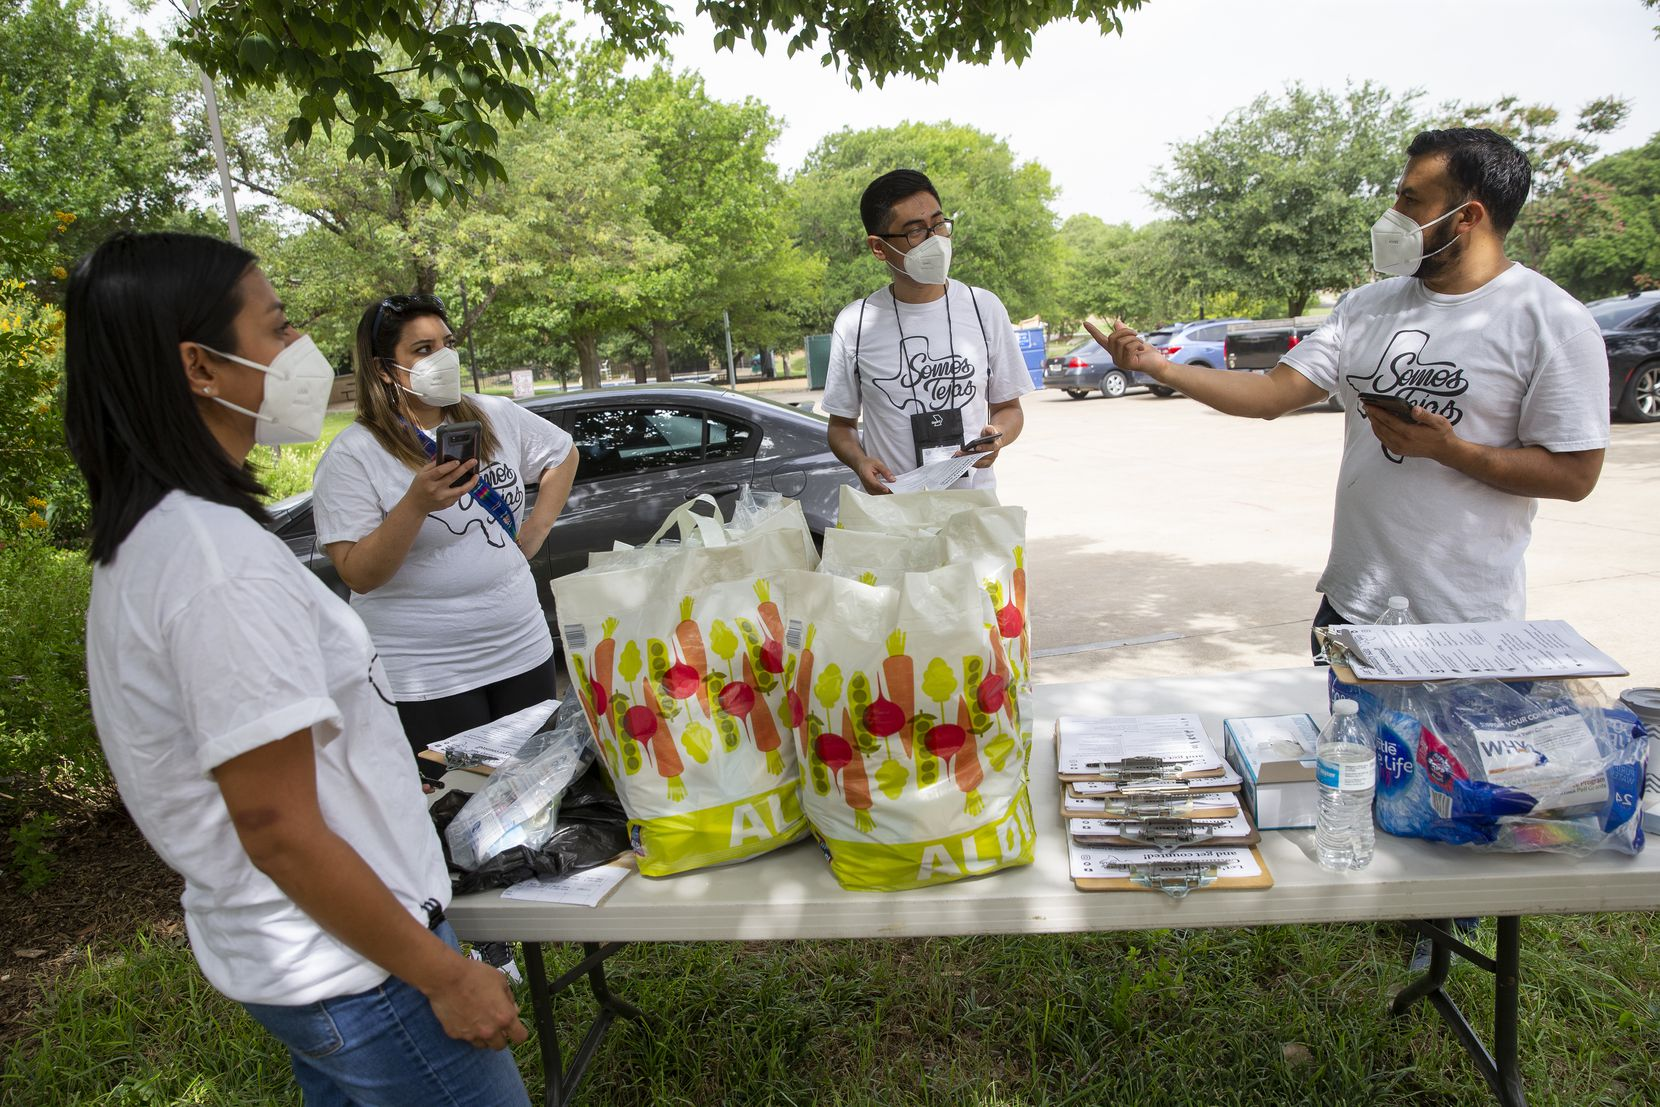 Ramiro Luna-Hinojosa (right) speaks to members of Somos Tejas at Martin Weiss Park before they go door to door in the Oak Cliff neighborhood educating people on COVID-19, the census and voting on June 27, 2020, in Dallas. (Juan Figueroa/The Dallas Morning News)